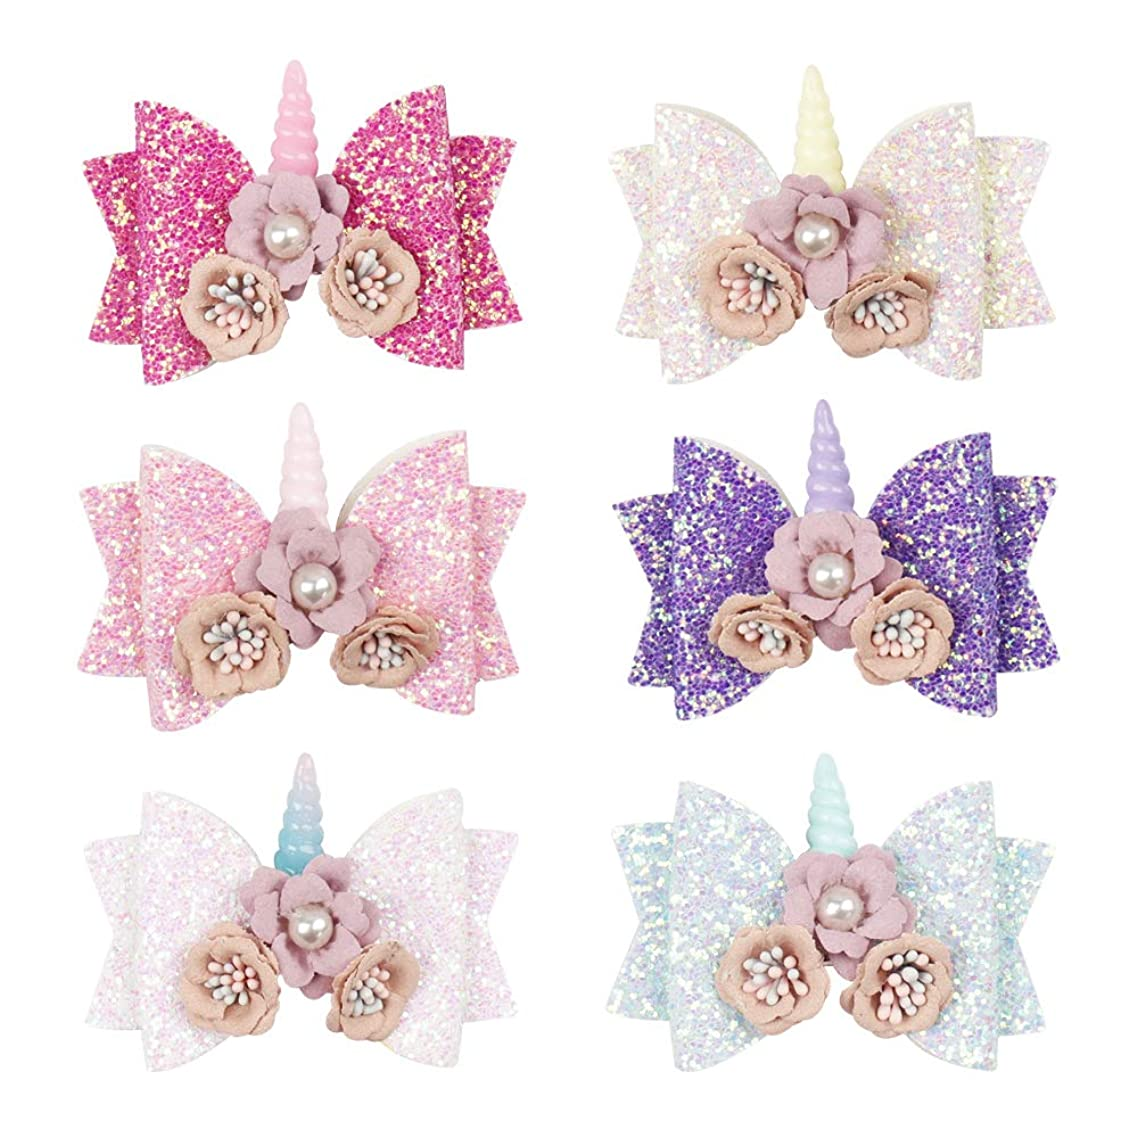 6 pcs Glitter Hair Bows Boutique Hair Clips 4inch Princess Hairgrips for Kids Sequins Hair Pin Accessories (6 Pcs Flower Unicorn Bow Clip)